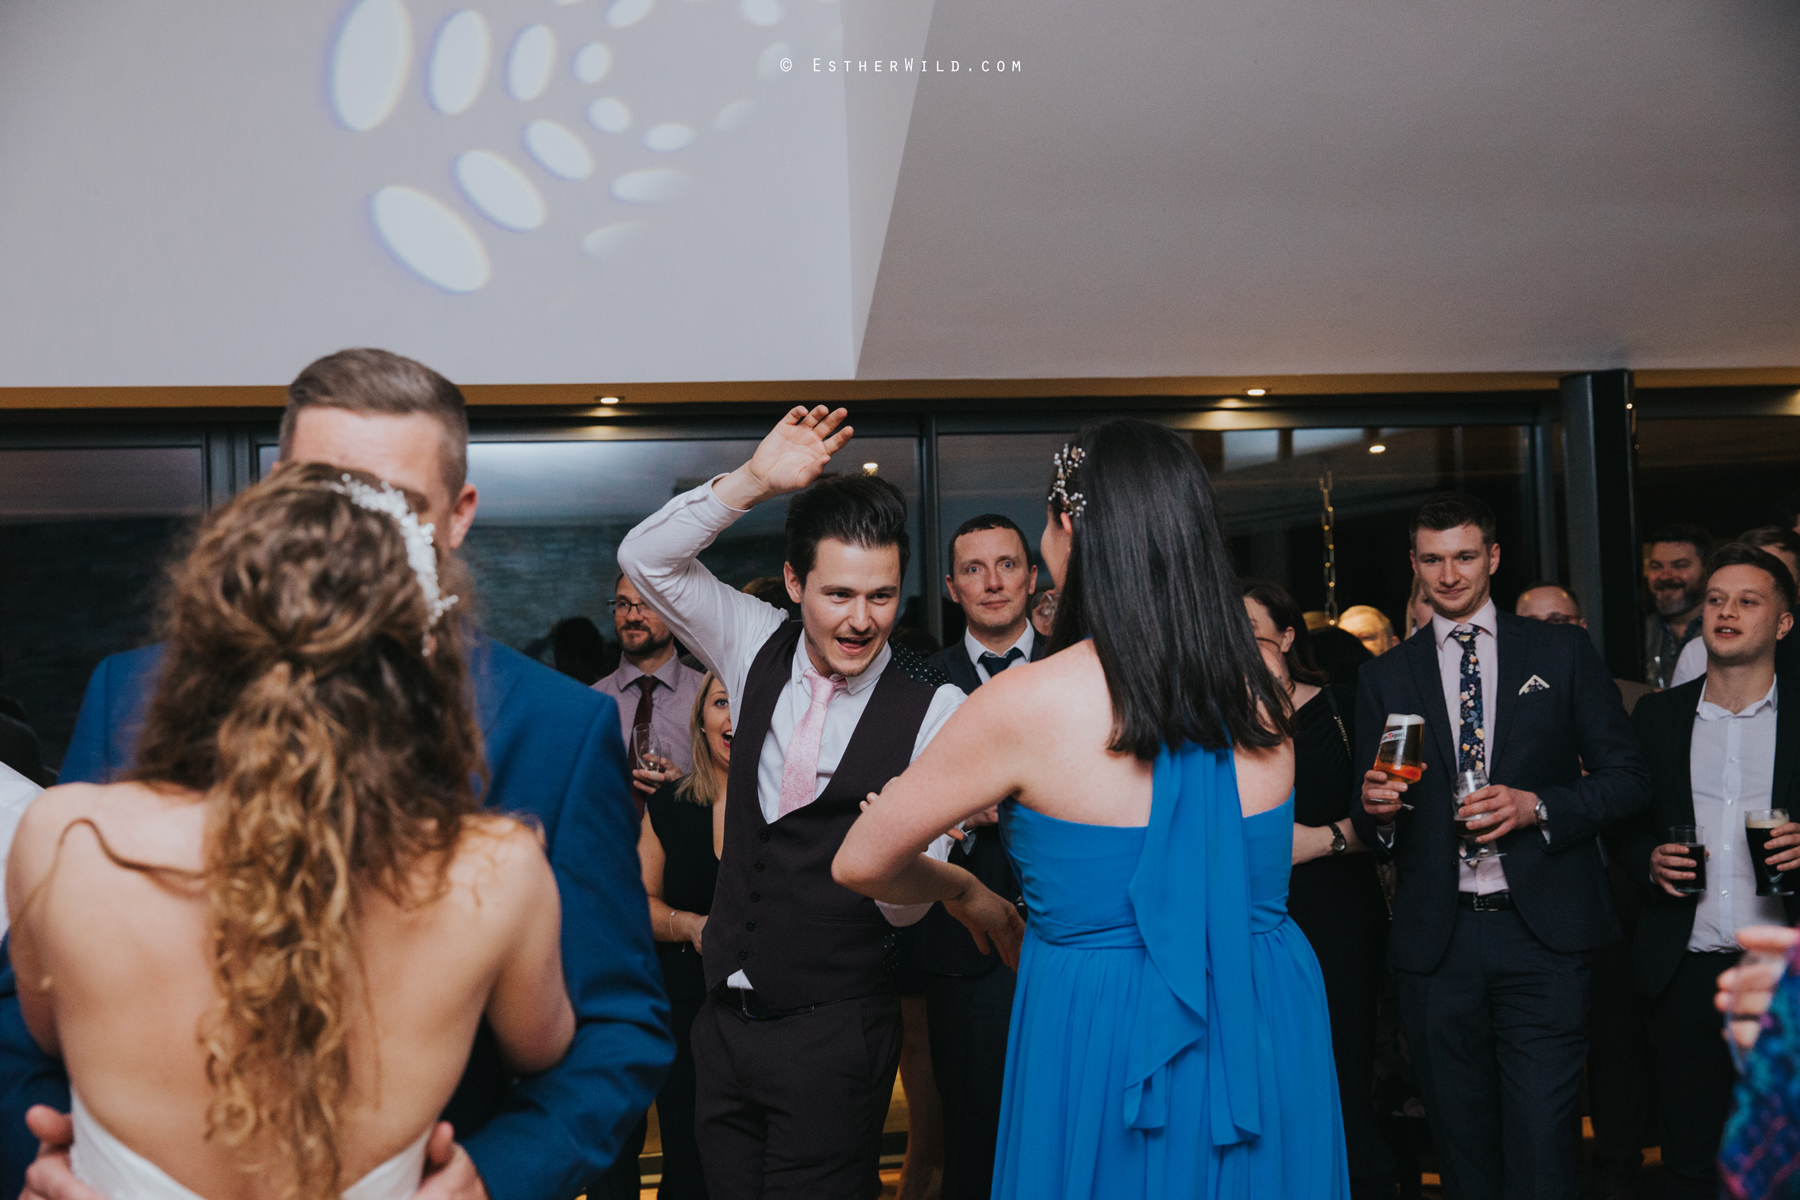 The_BoatHouse_Wedding_Venue_Ormesby_Norfolk_Broads_Boat_Wedding_Photography_Esther_Wild_Photographer_IMG_3572.jpg